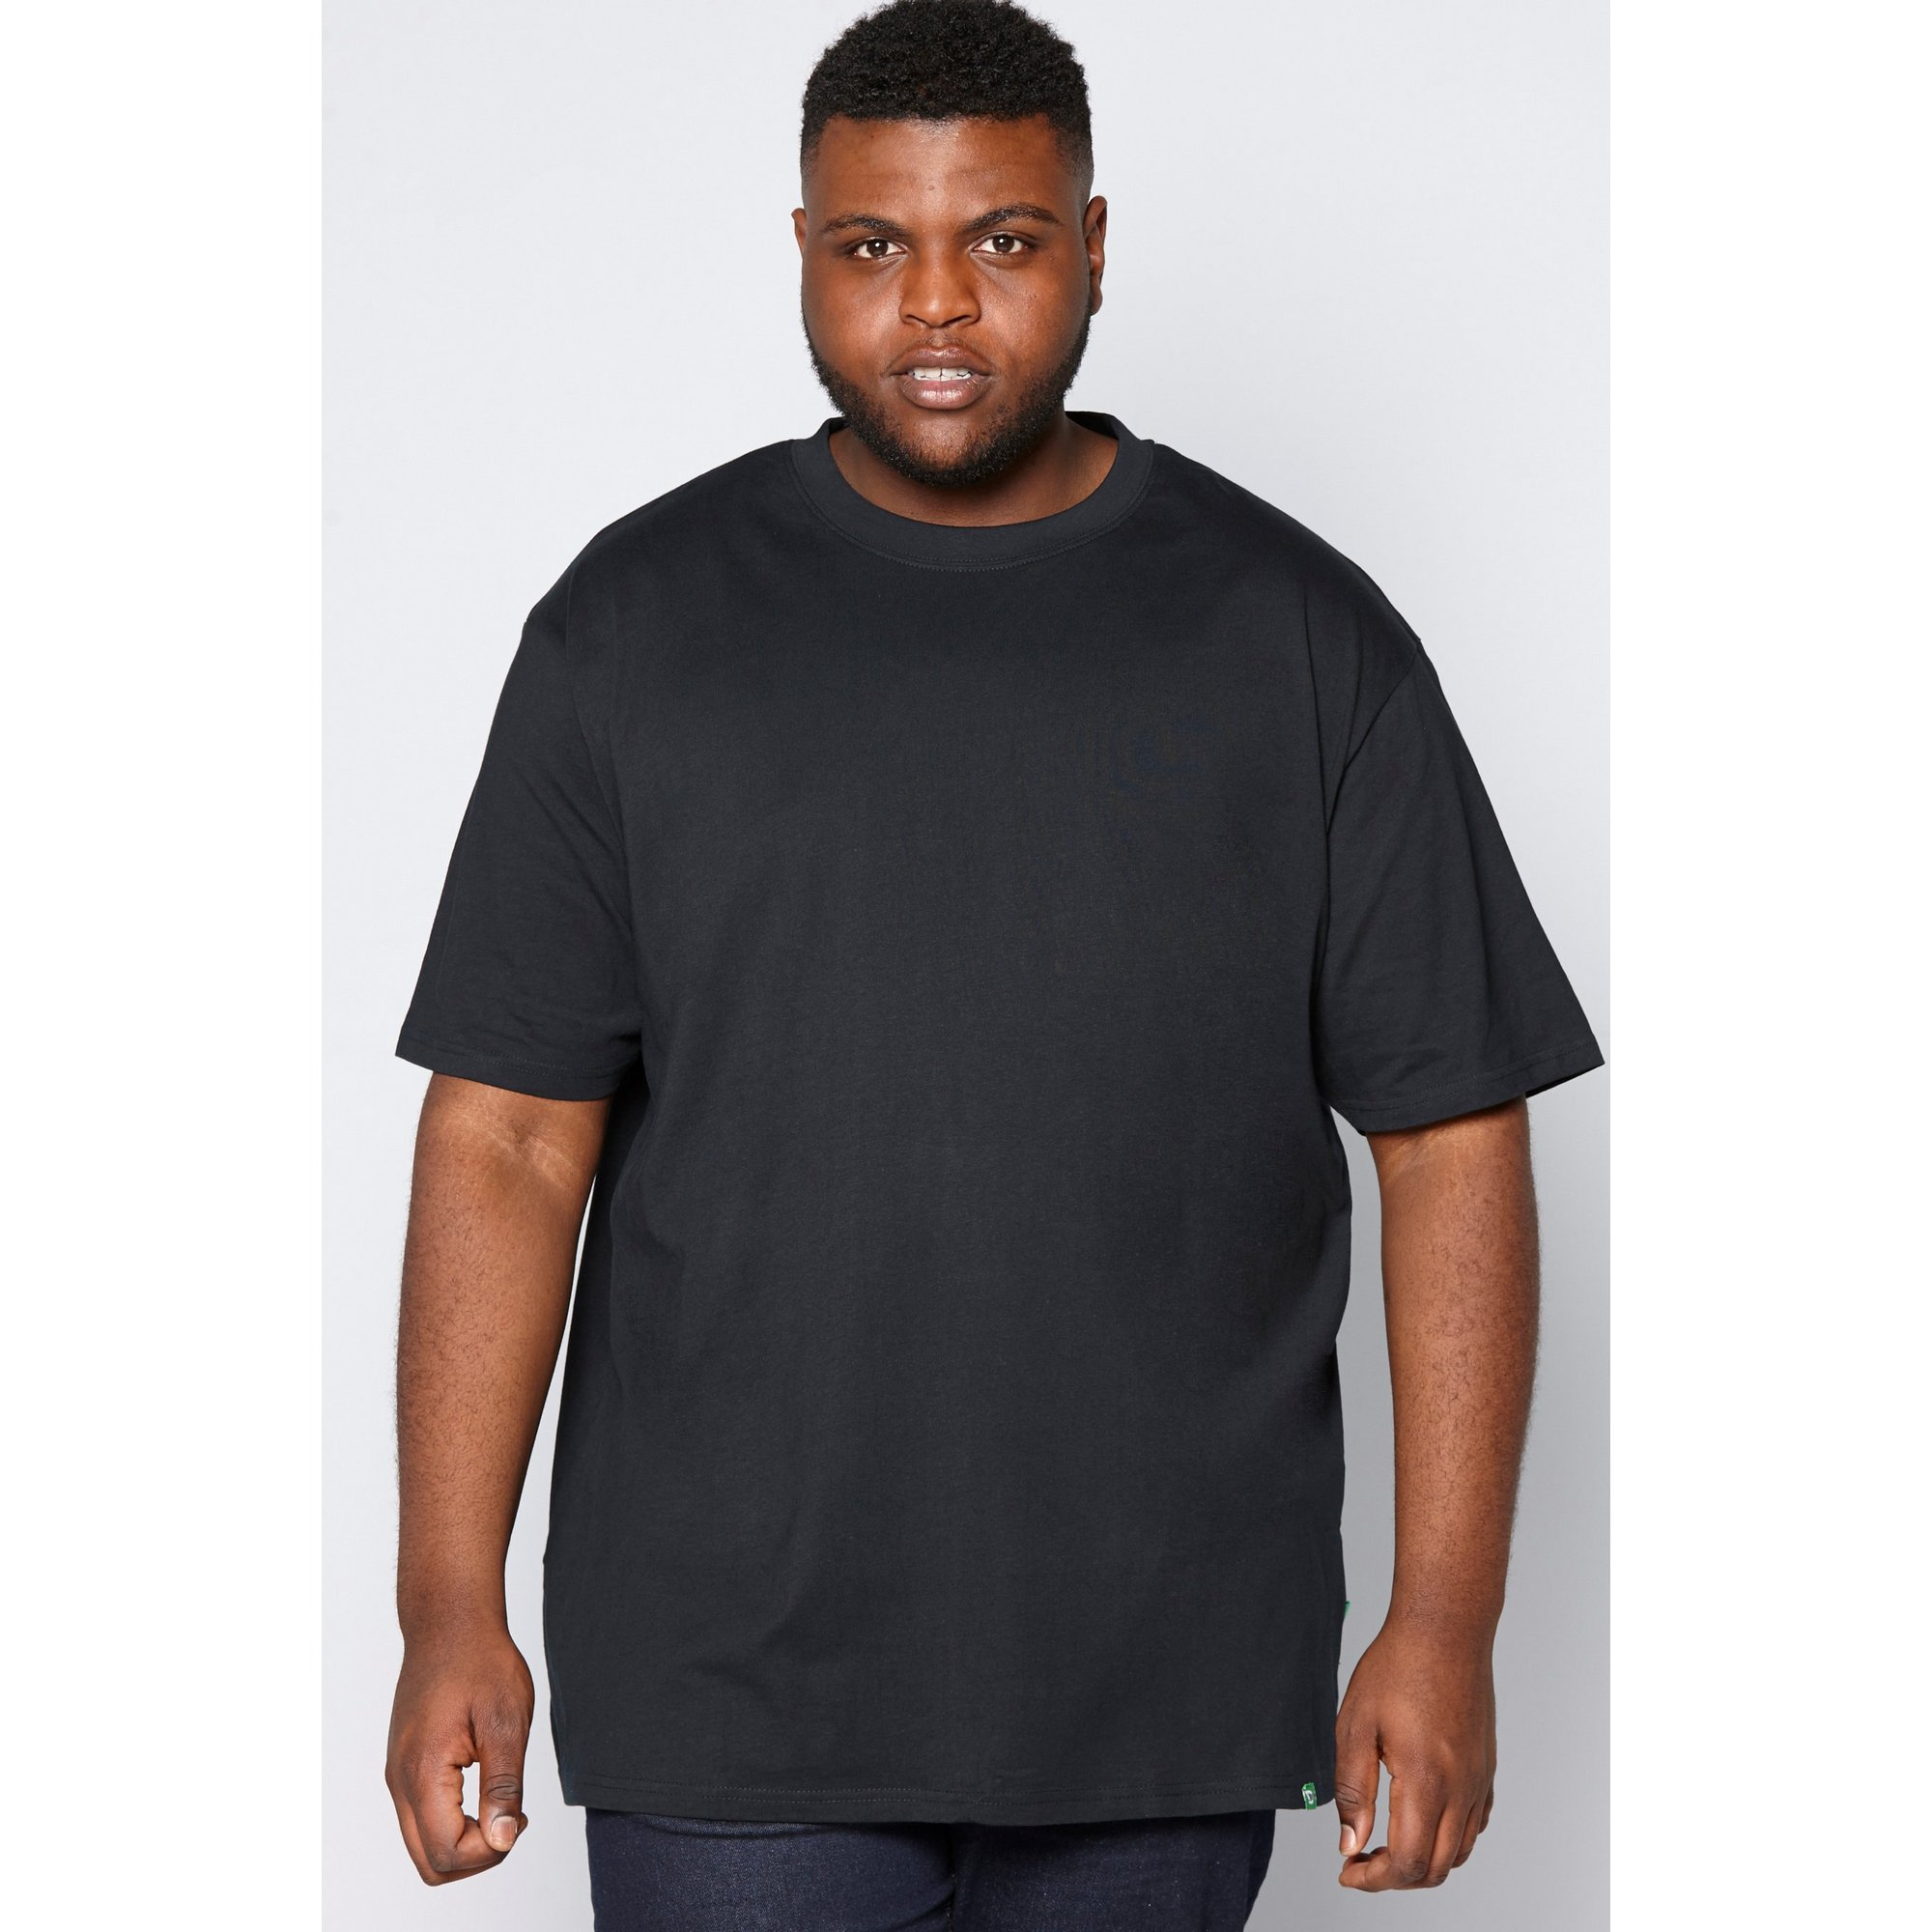 Image of D555 by Duke Big and Tall Premium Cotton Tee